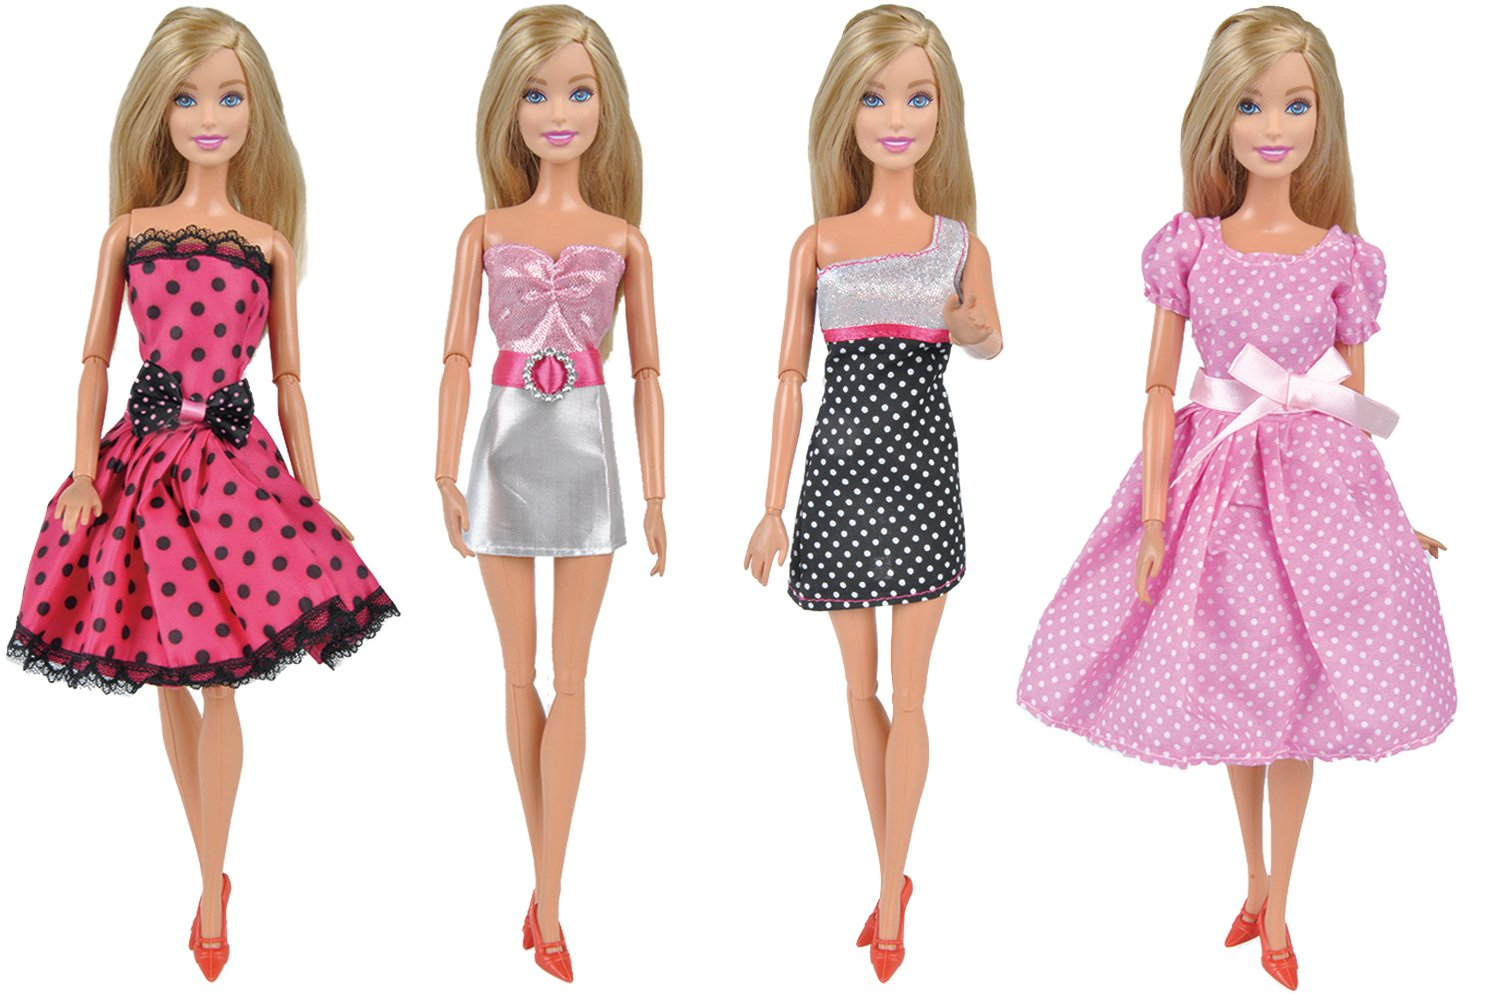 E-TING 4pcs Mini Dress Fancy Doll Clothes for Girl Fashionistas Dolls (#B) (Color A)